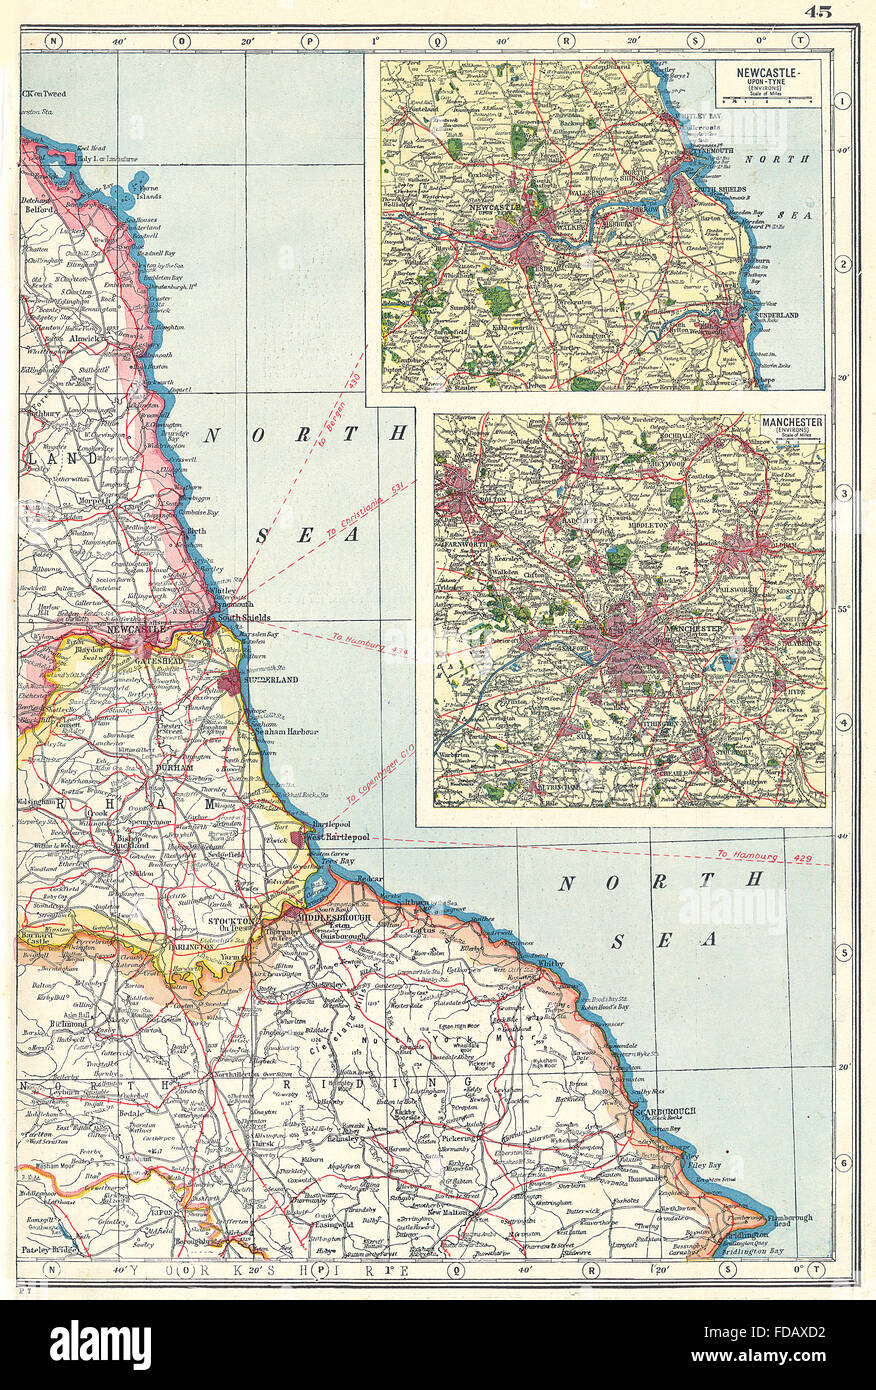 NORTH EAST ENGLAND COAST  Durham Yorks Northumbs Newcastle upon Tyne     NORTH EAST ENGLAND COAST  Durham Yorks Northumbs Newcastle upon Tyne  1920  map